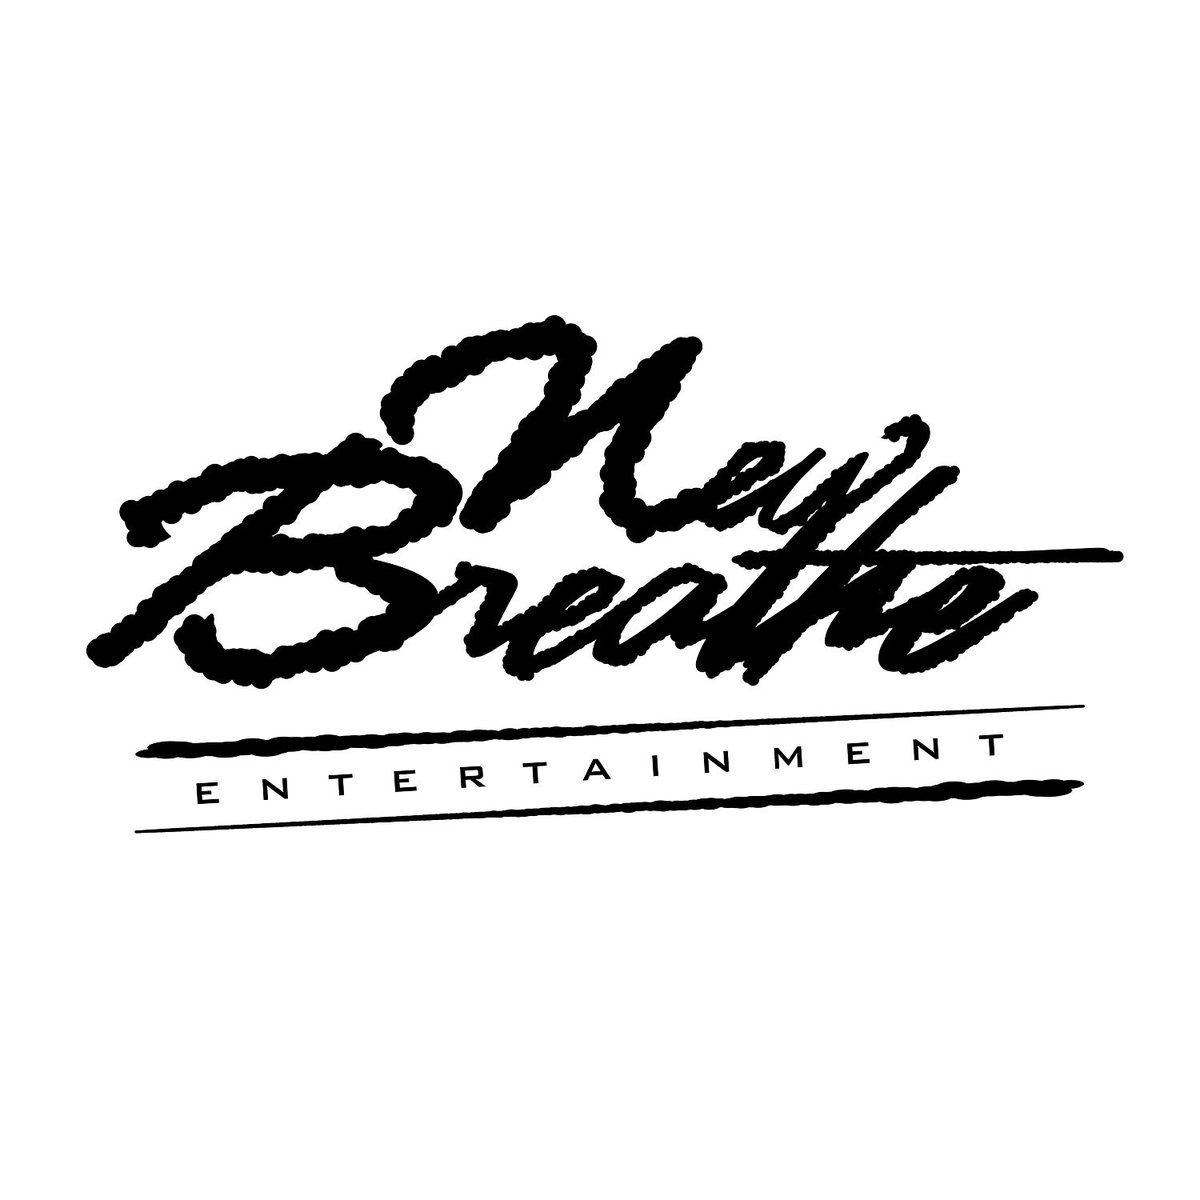 New breathe entertainment newbreatheent twitter i do this by myself so respect my blueprint newbreatheent ornothing selfmade doloboy teefyepicitter2wfeiuqjln malvernweather Images